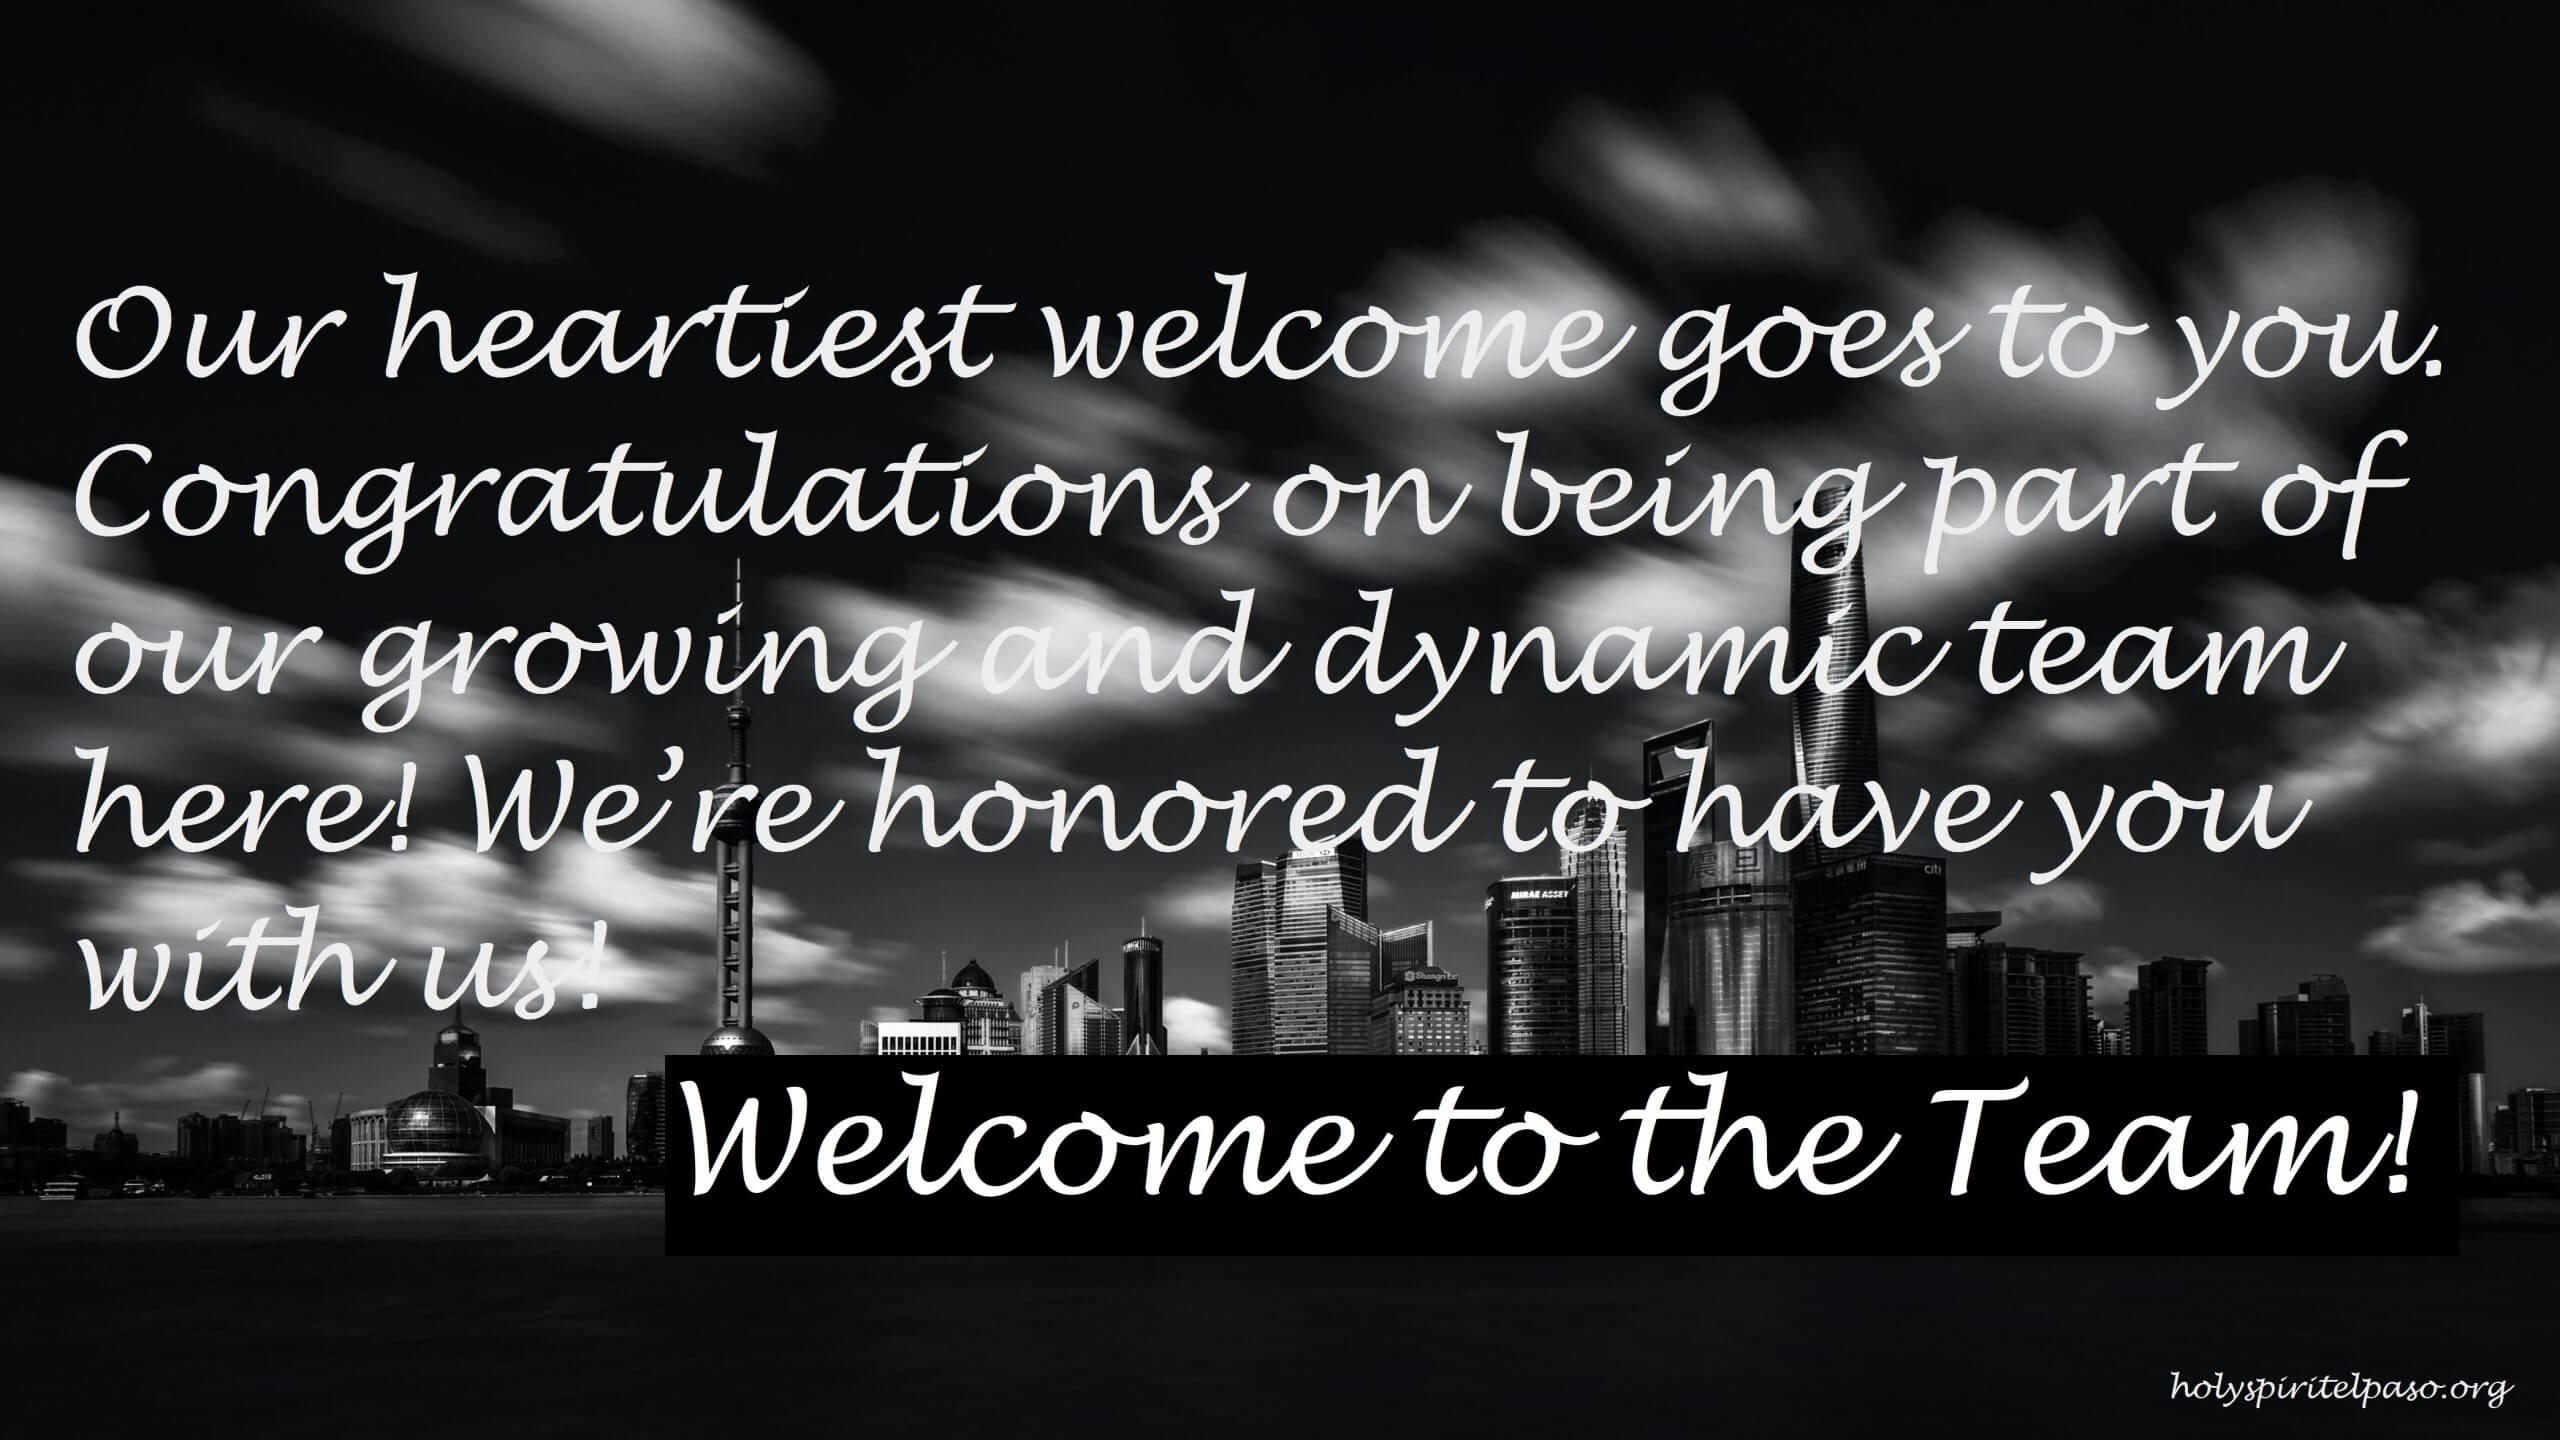 Welcome Back Quotes For Staff, Boss, Employee, Coworker